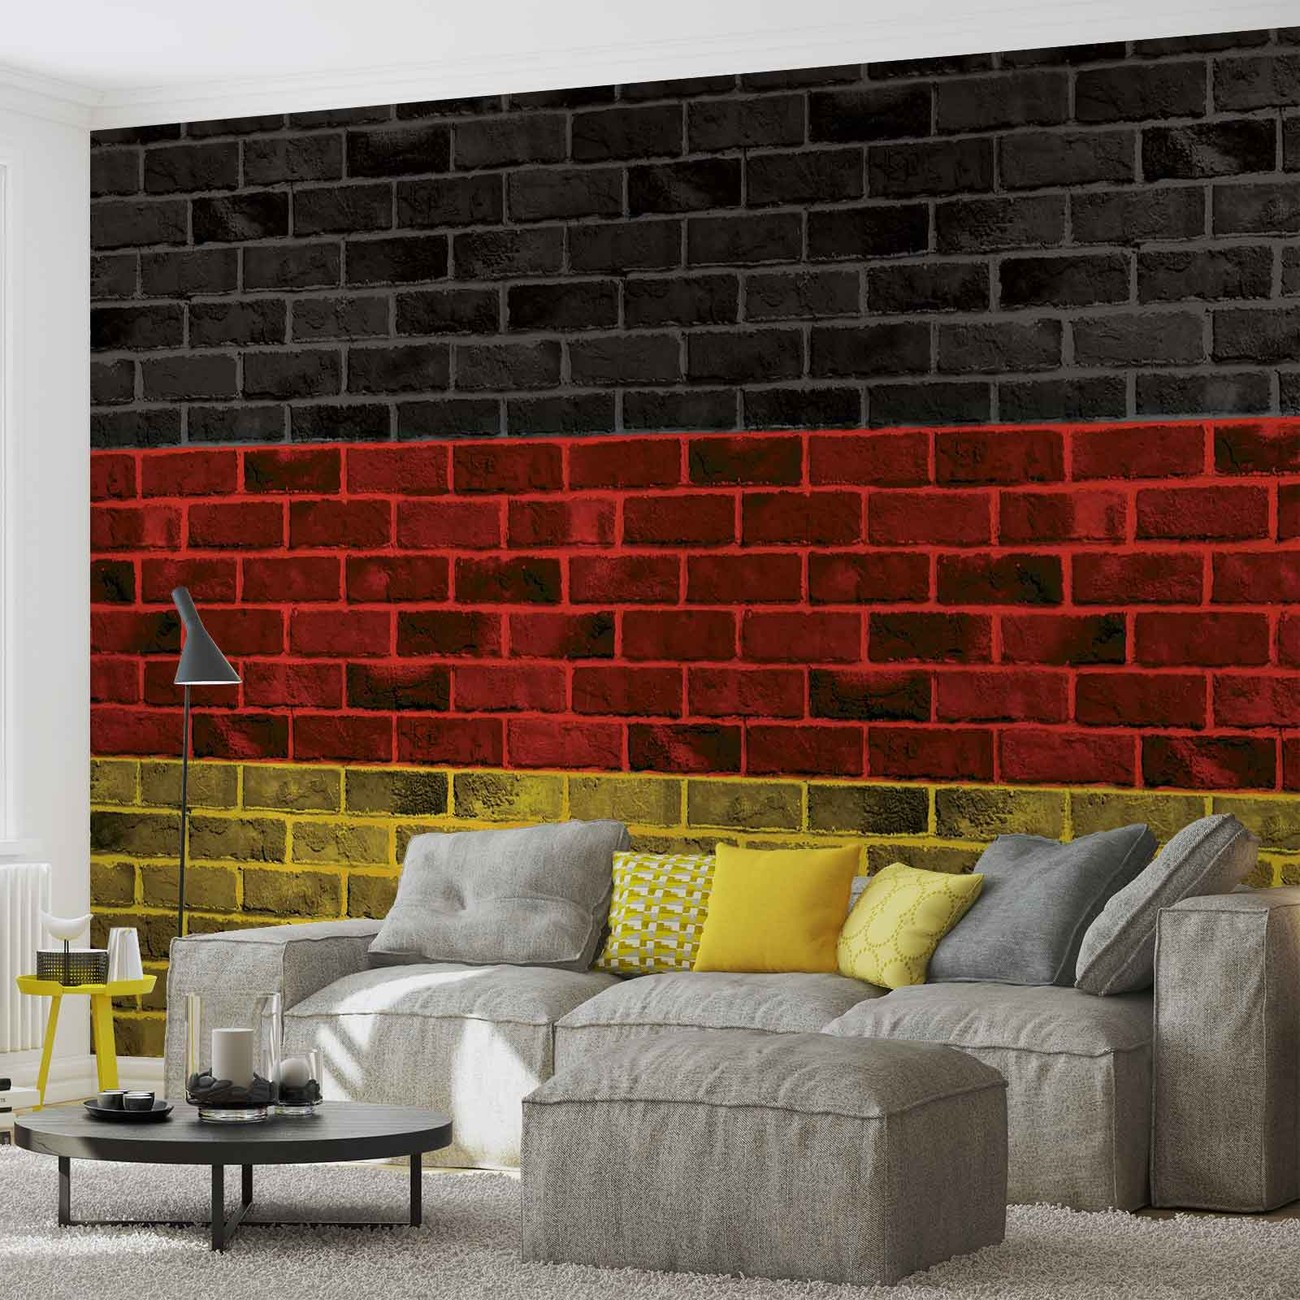 Brick german flag wall paper mural buy at europosters for Brick wall mural decal